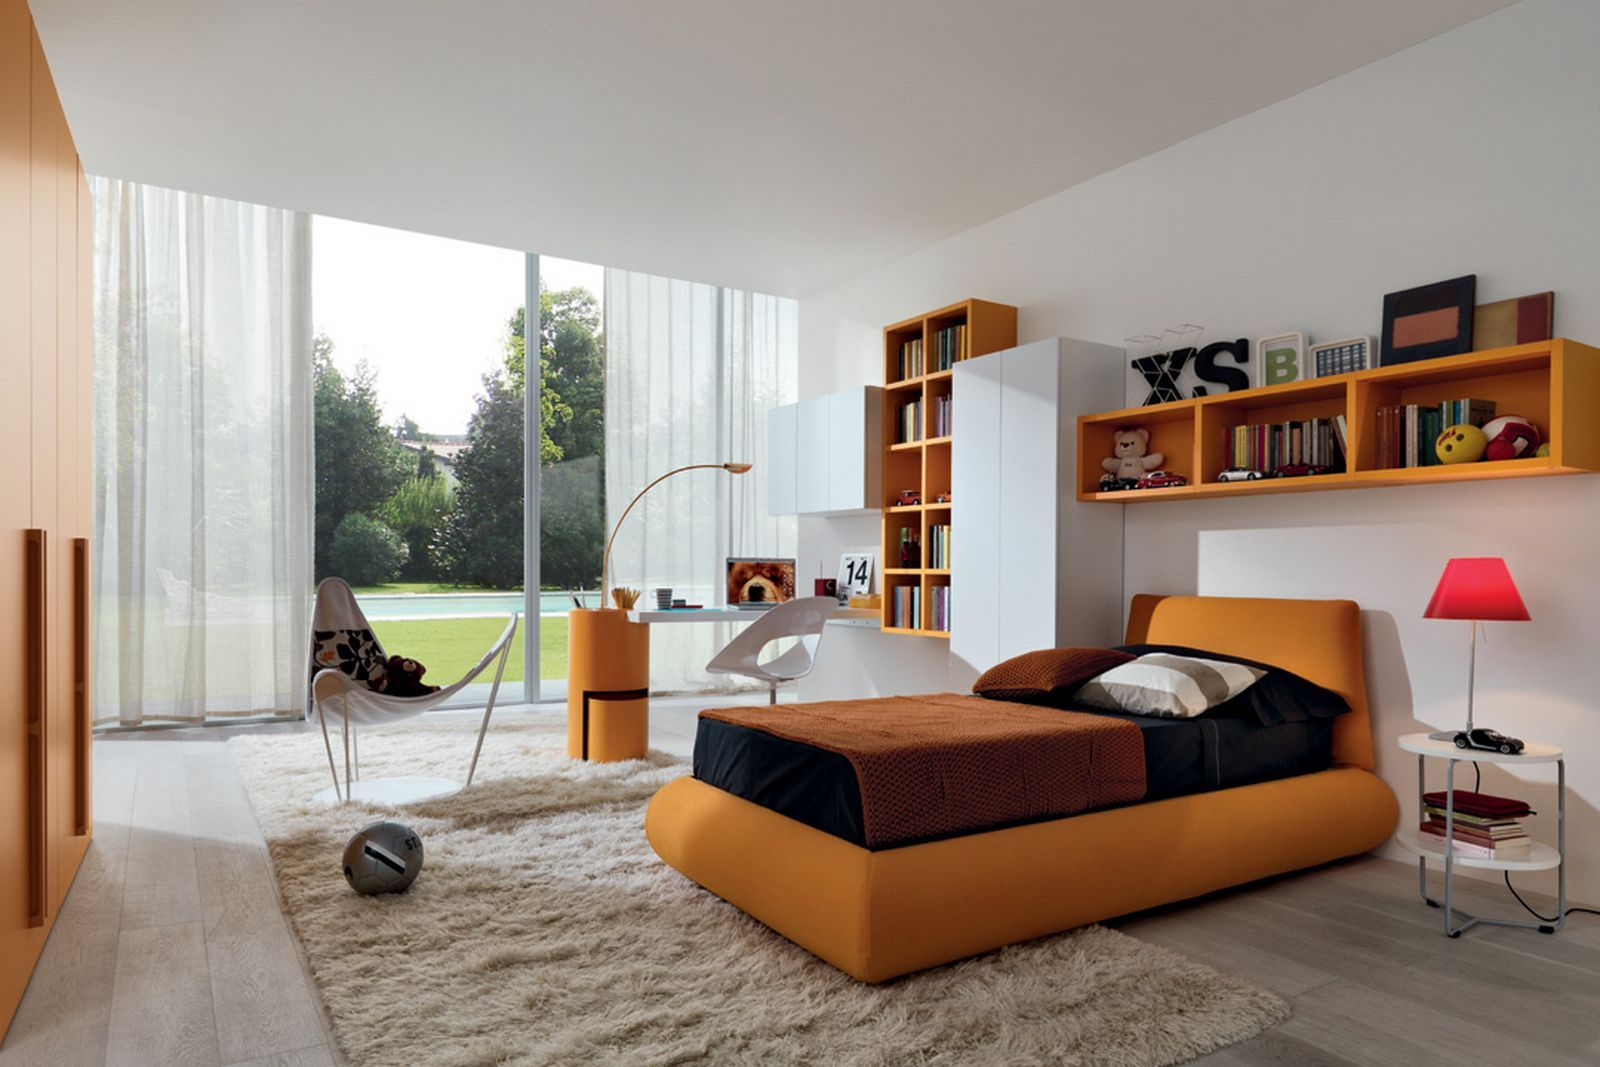 Easy Bedroom Ideas 2 Design Room Nice design quotes House